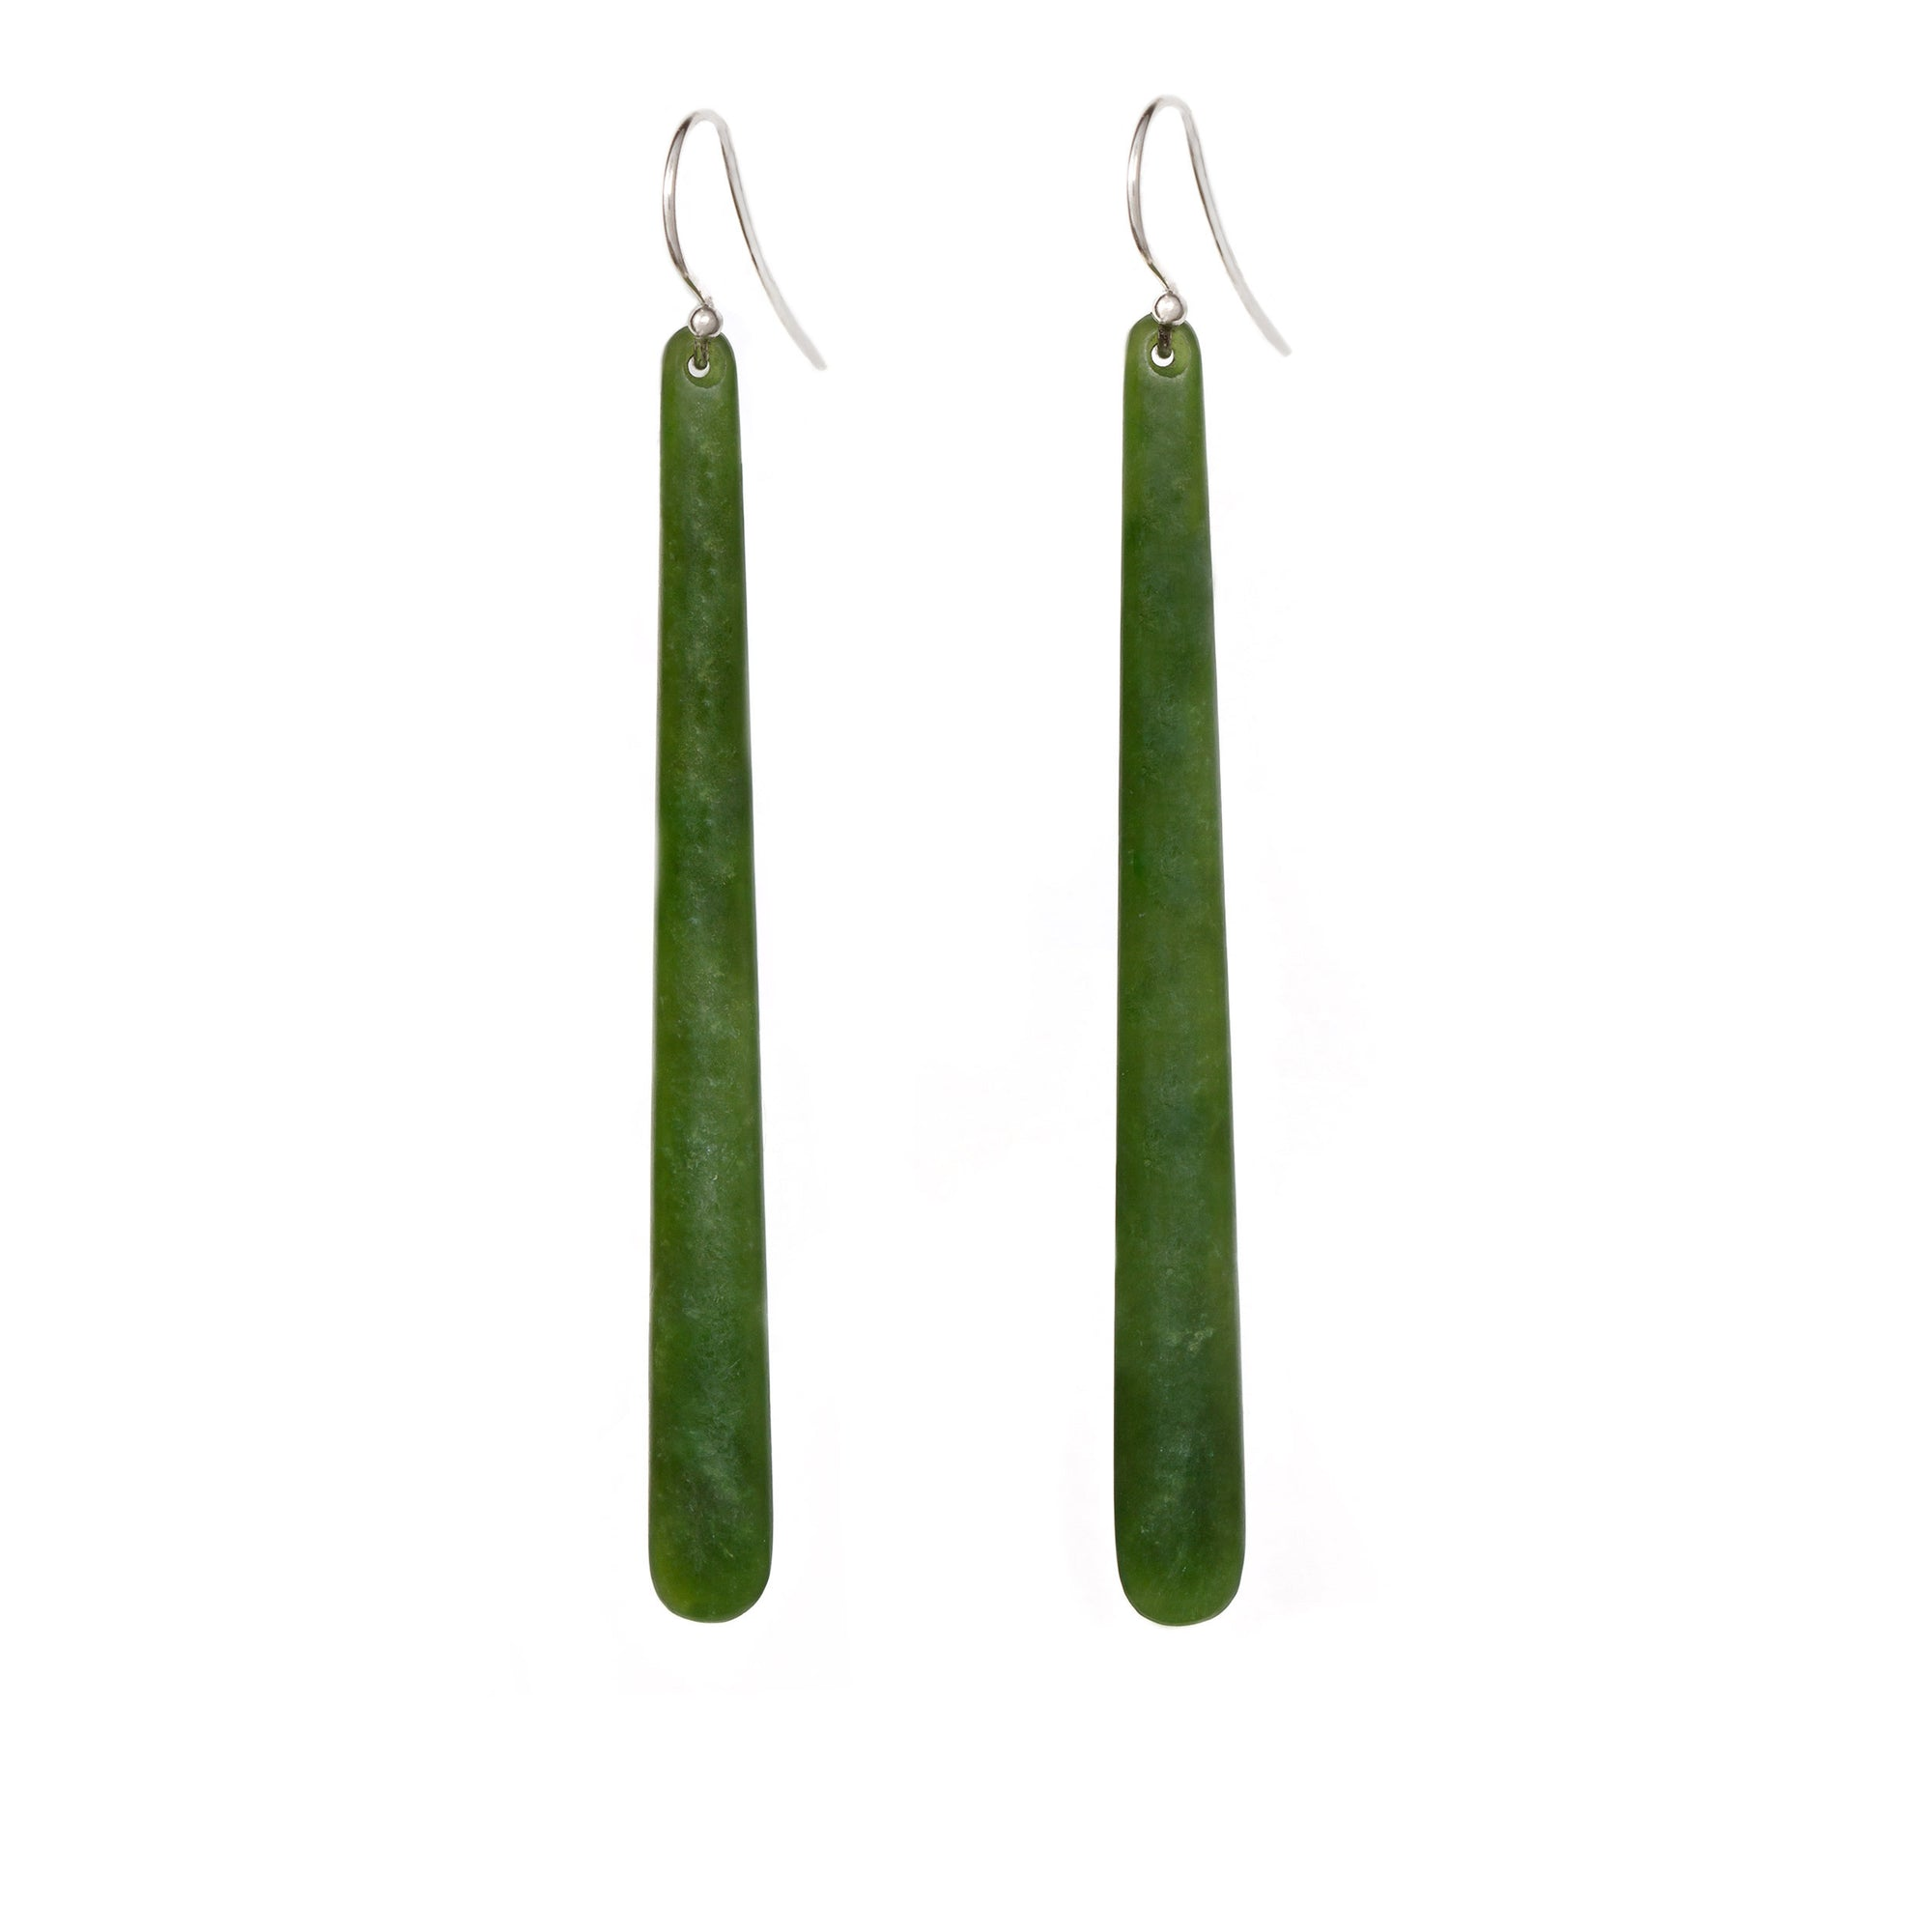 New Zealand Pounamu 80mm Earrings